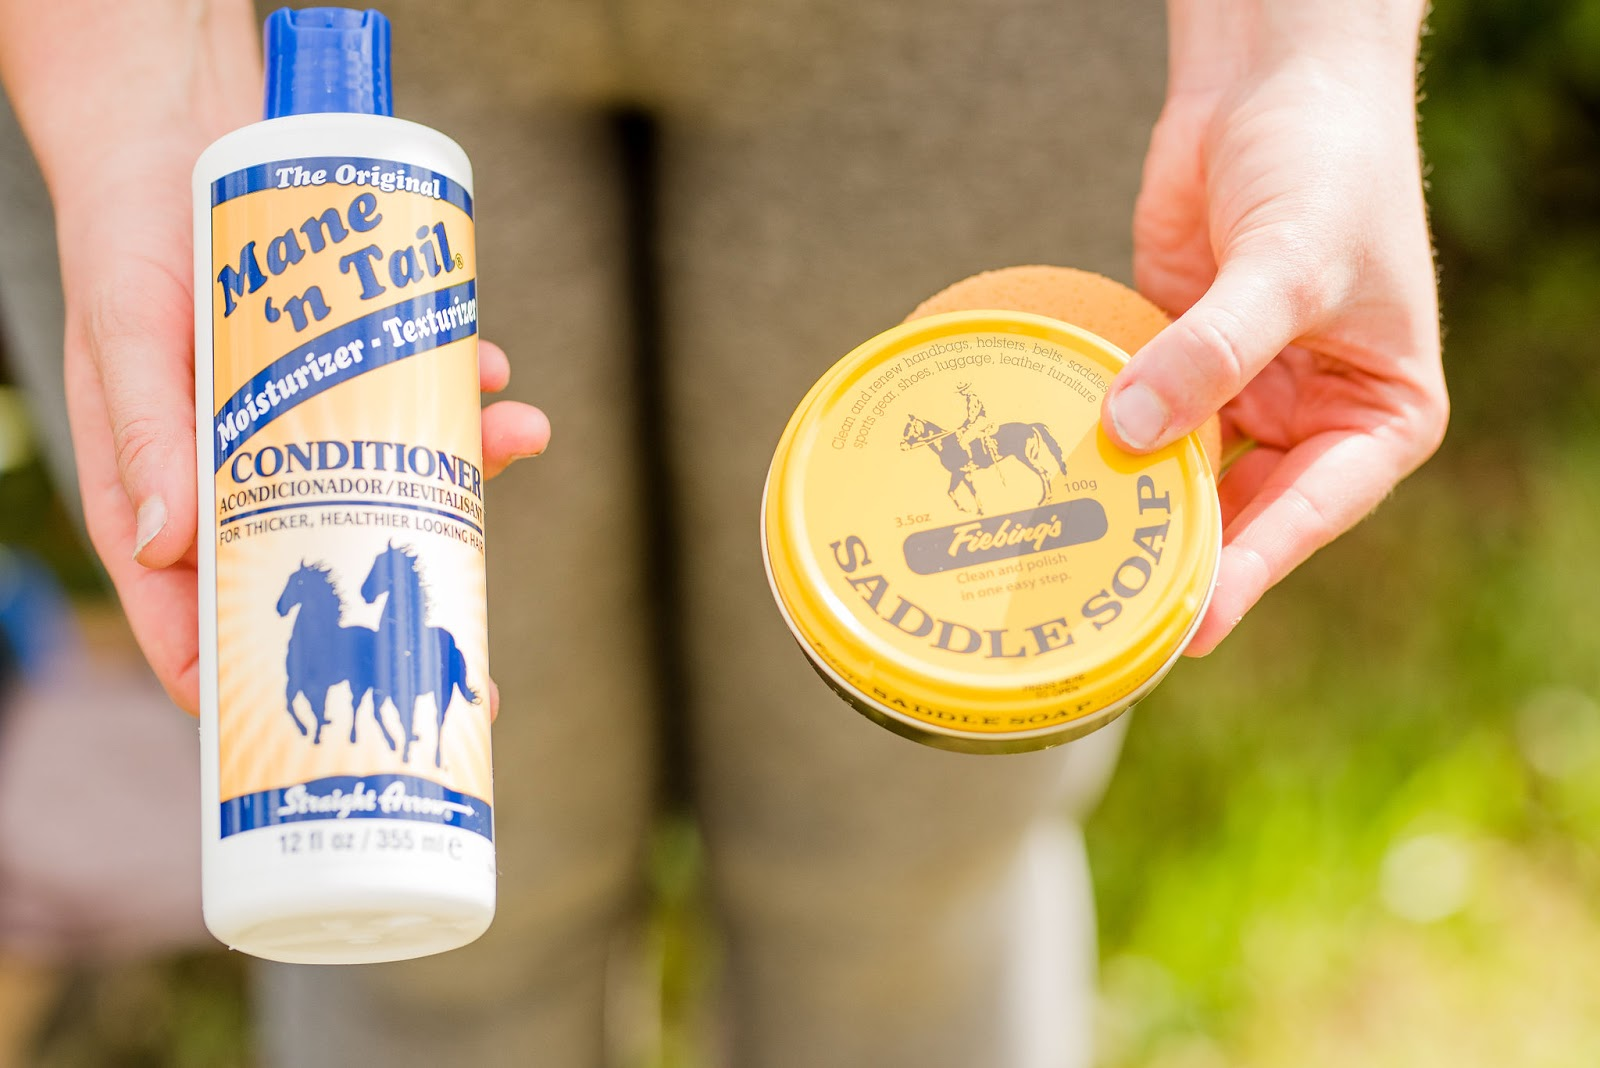 Saddlebox horse subscription box Mane 'N Tail conditioner and Fiebing's Saddle Soap